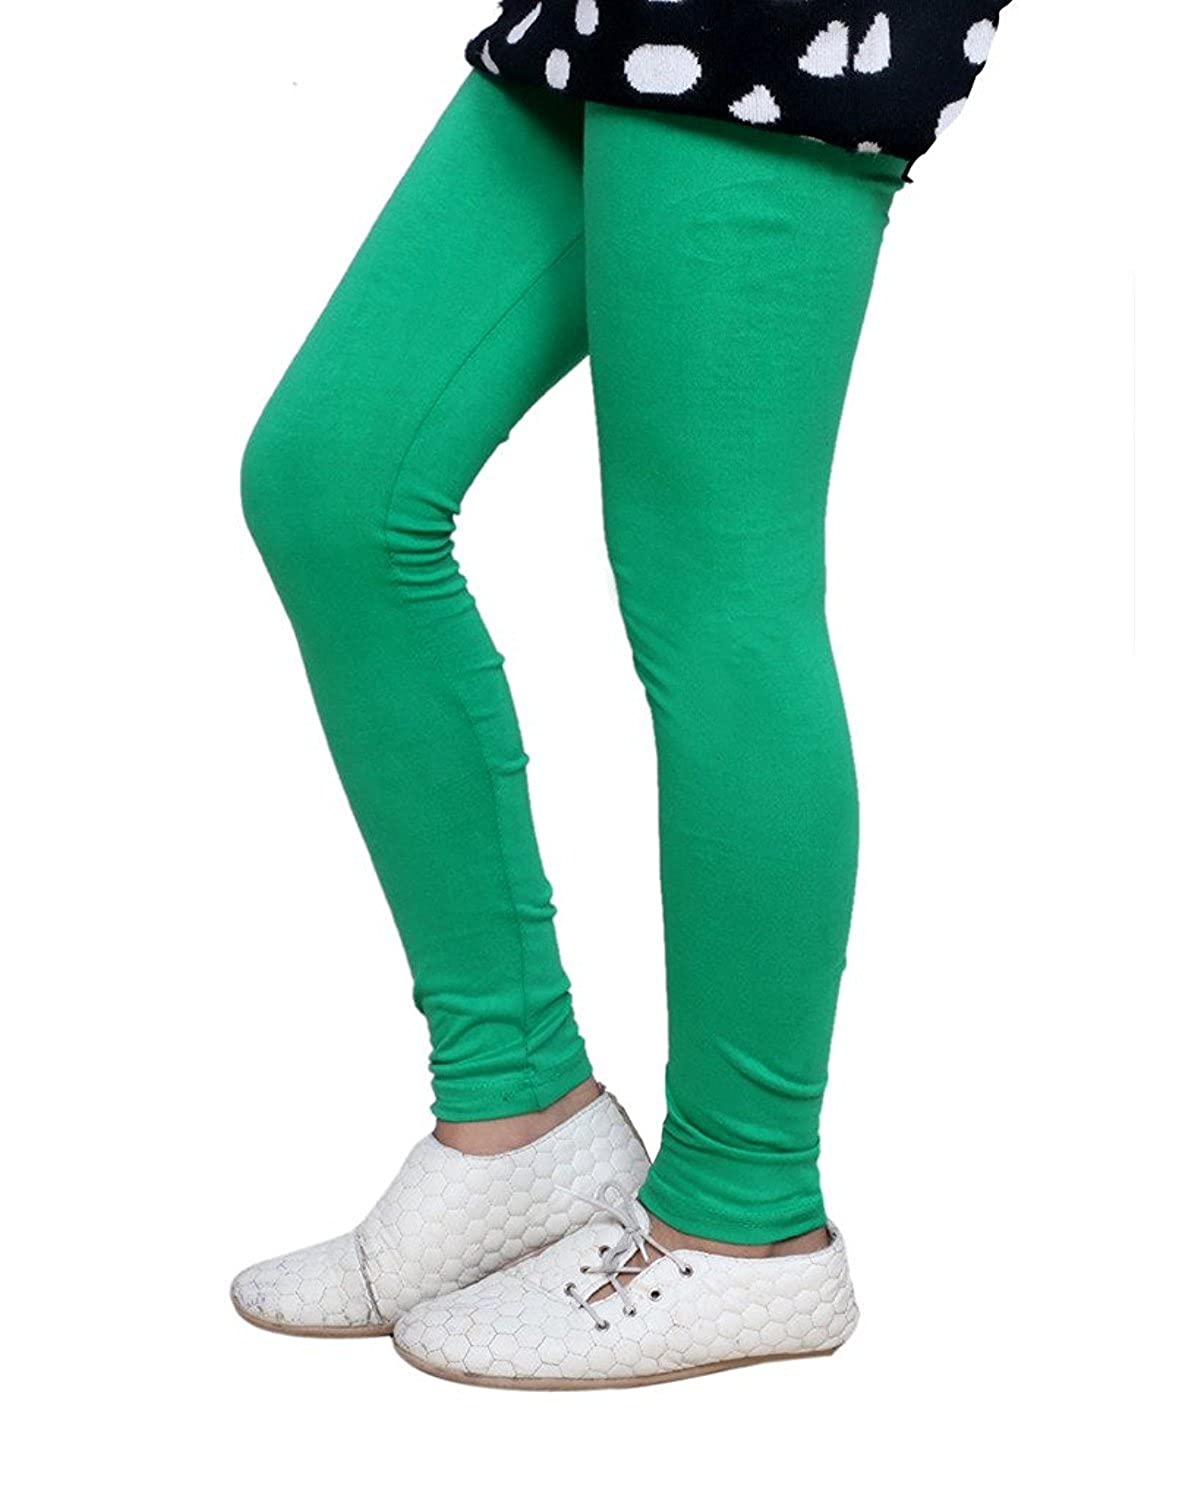 Pack Of 4 Indistar Girls 2 Cotton Solid Legging Pants /_Multicolor/_Size-9-10 Years/_71405061619-IW-P4-32 and 2 Cotton Printed Legging Pants